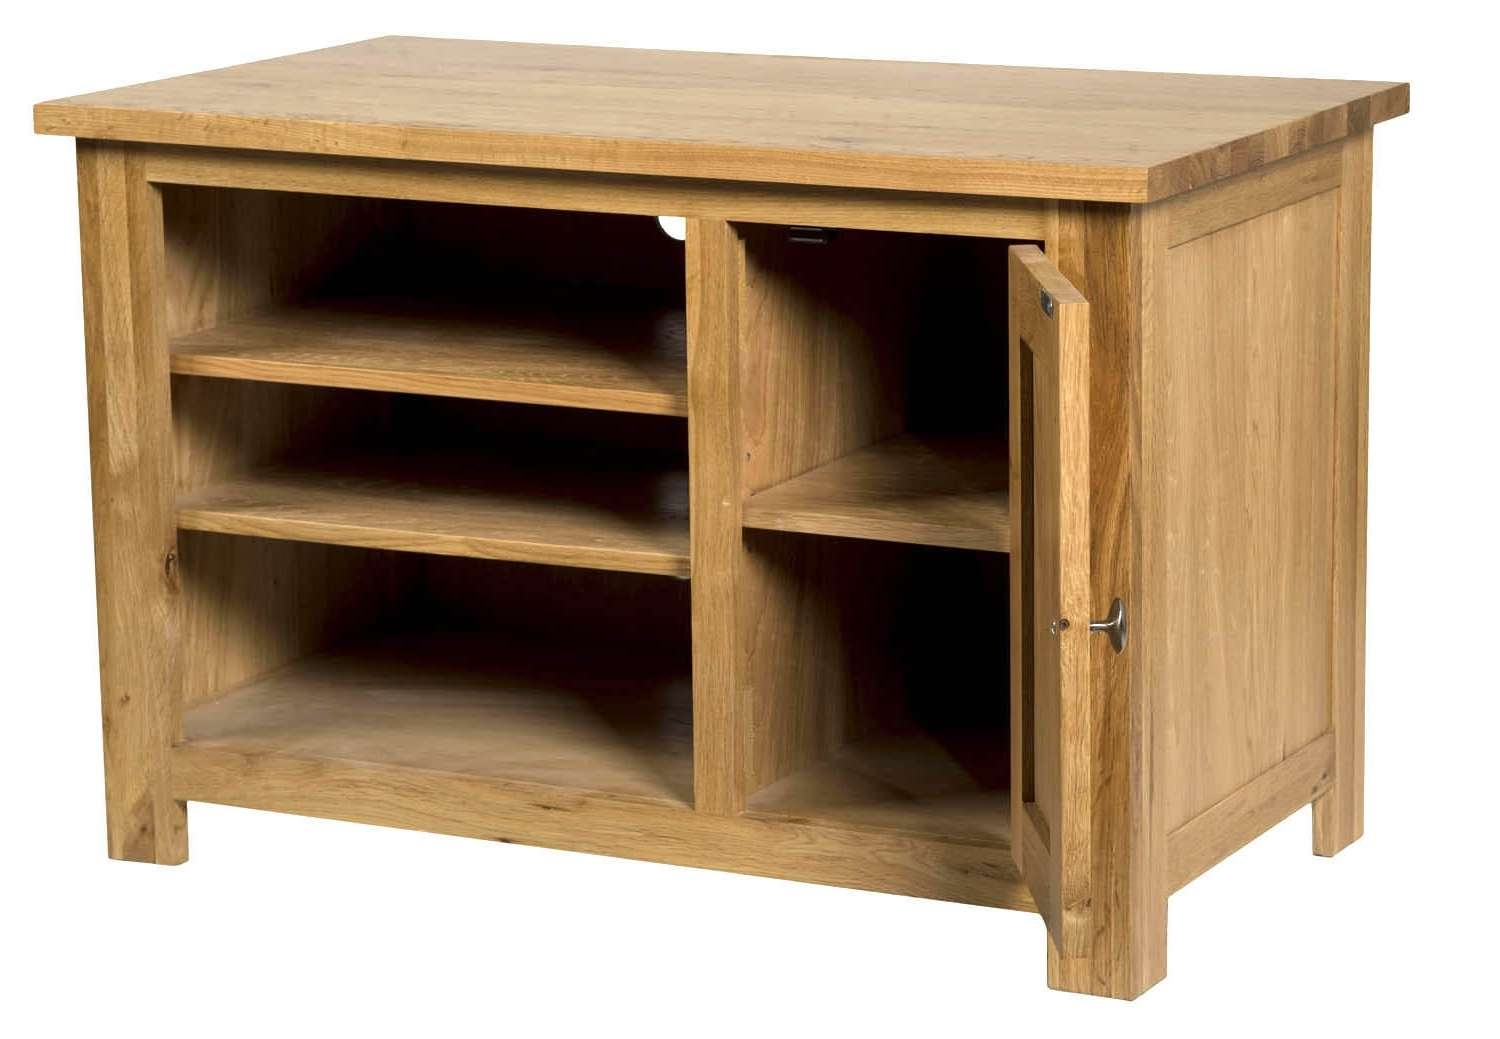 Waverly Oak Small Compact Tv Stand With Cabinet Storage | Hallowood Pertaining To Small Oak Tv Cabinets (View 15 of 20)